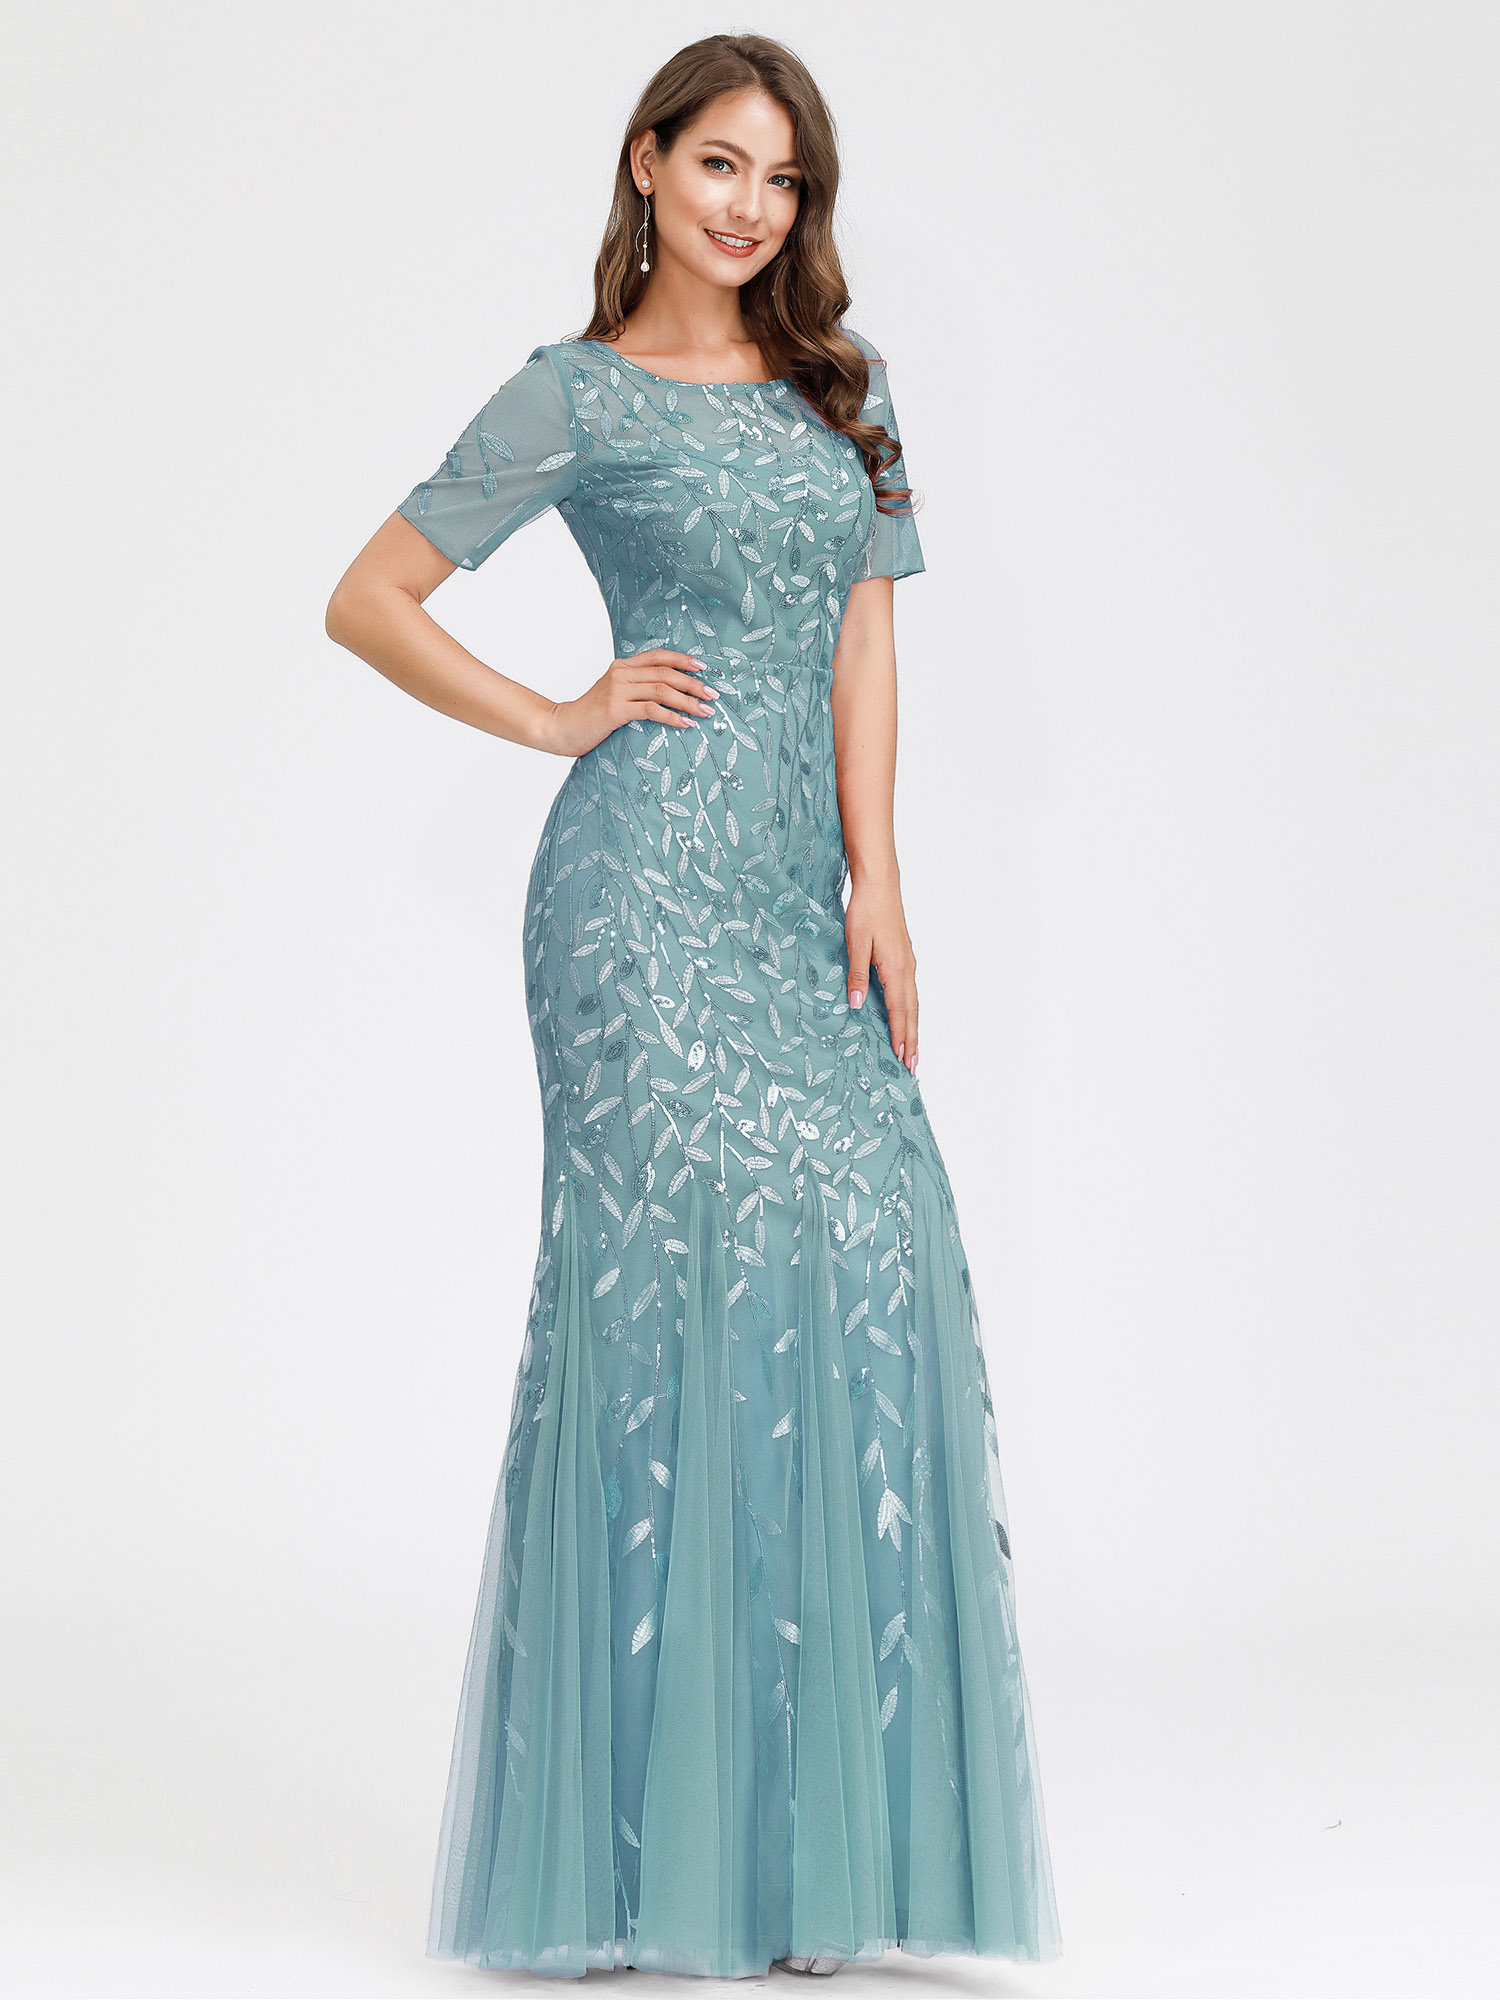 Ever-pretty-US-Mermaid-Evening-Party-Dresses-Formal-Cocktail-Celebrity-Prom-Gown thumbnail 6